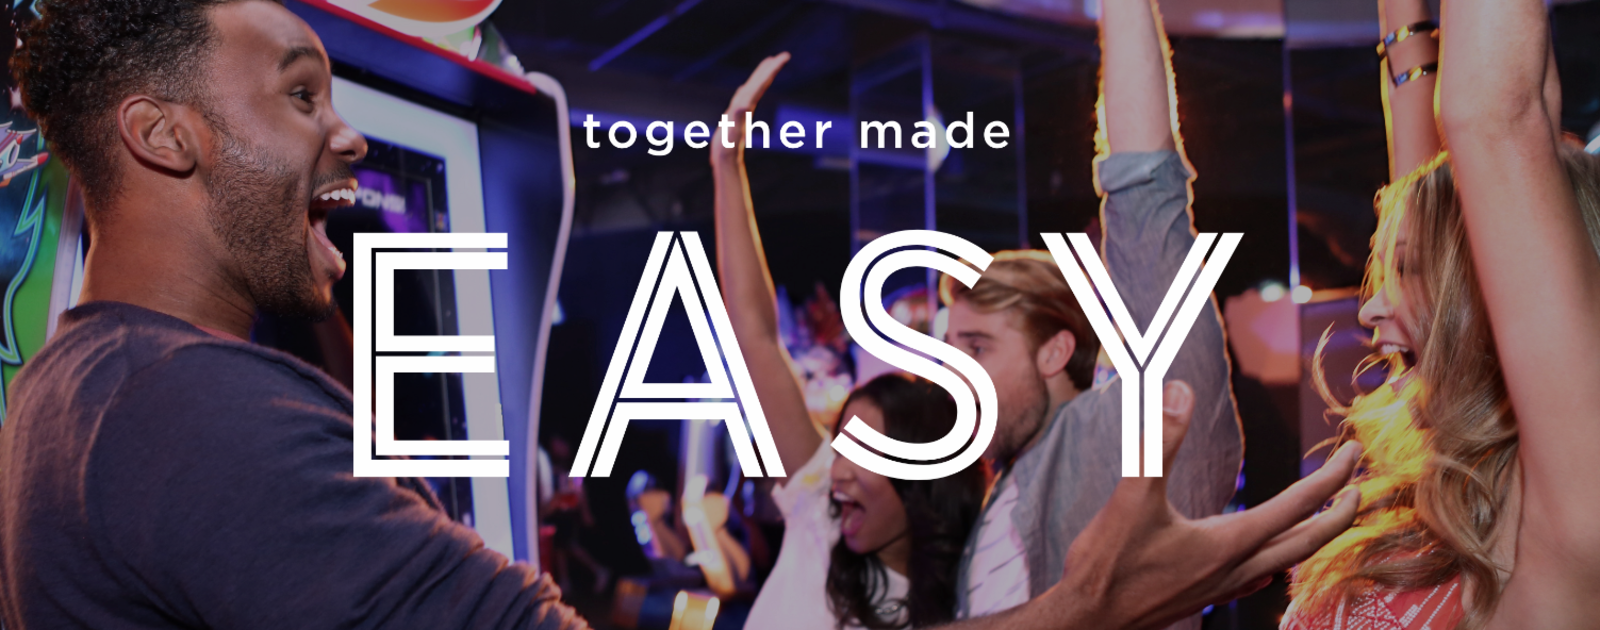 together made easy